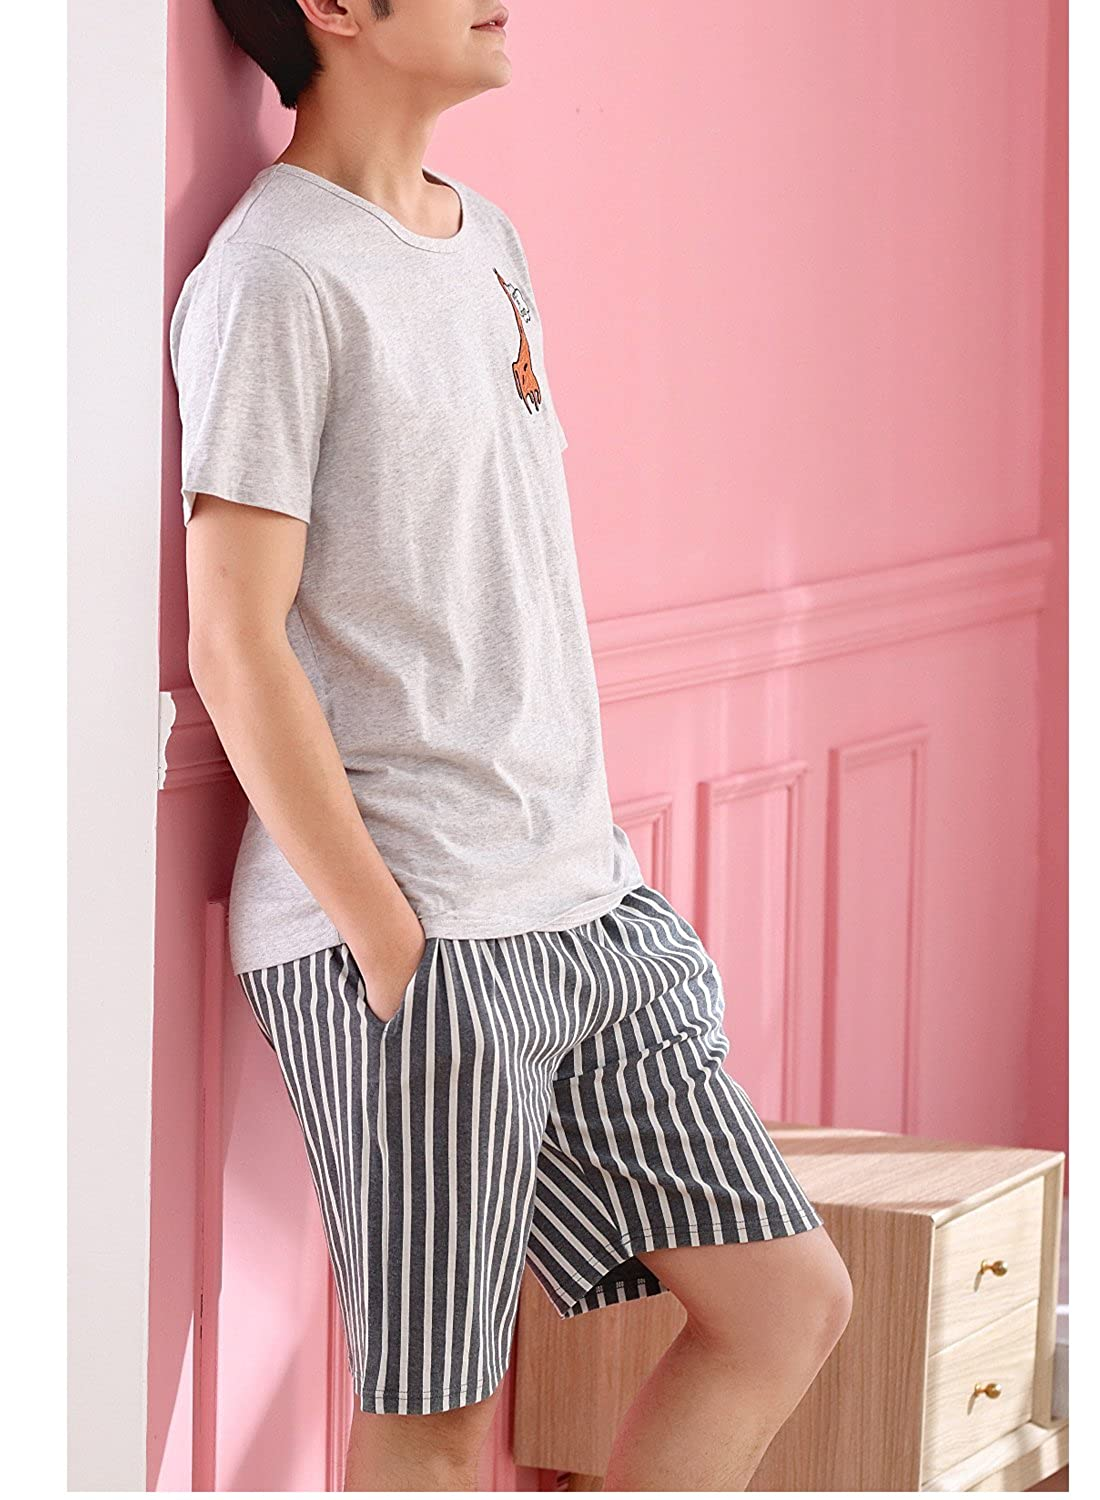 Fashion Teen Boys Top and Shorts PJS Set Loungewear Snug-Fit Sleepwear